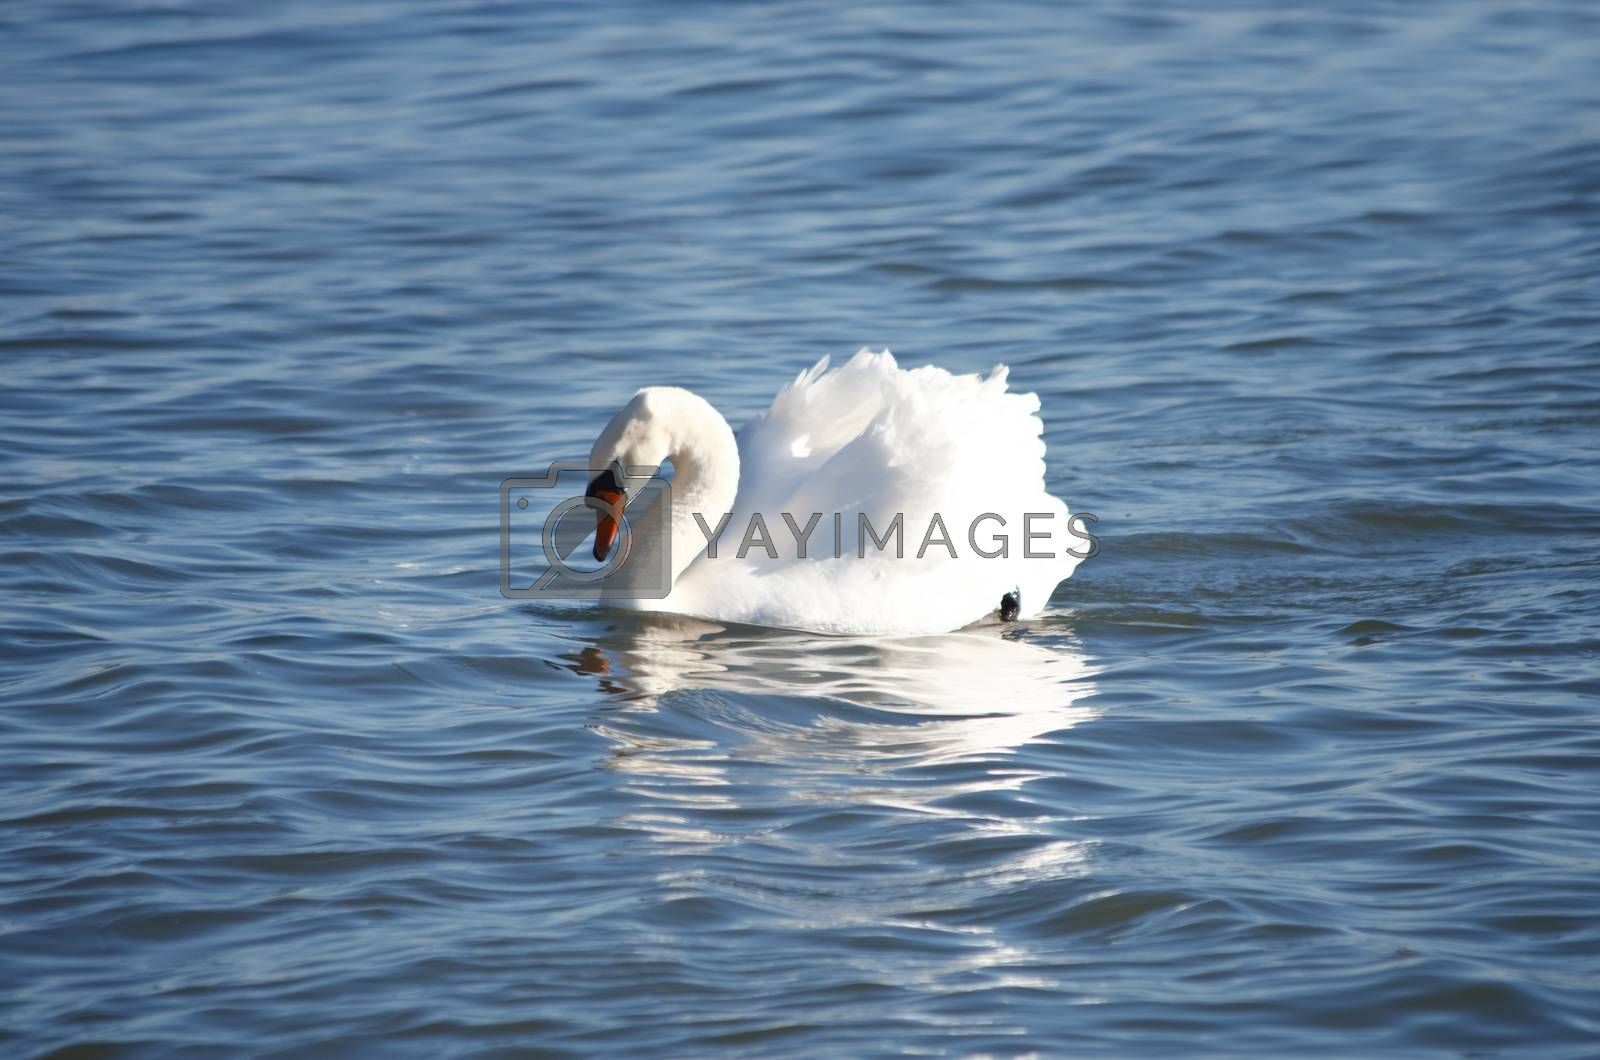 Single White Swan in Blue Water, Sunny day